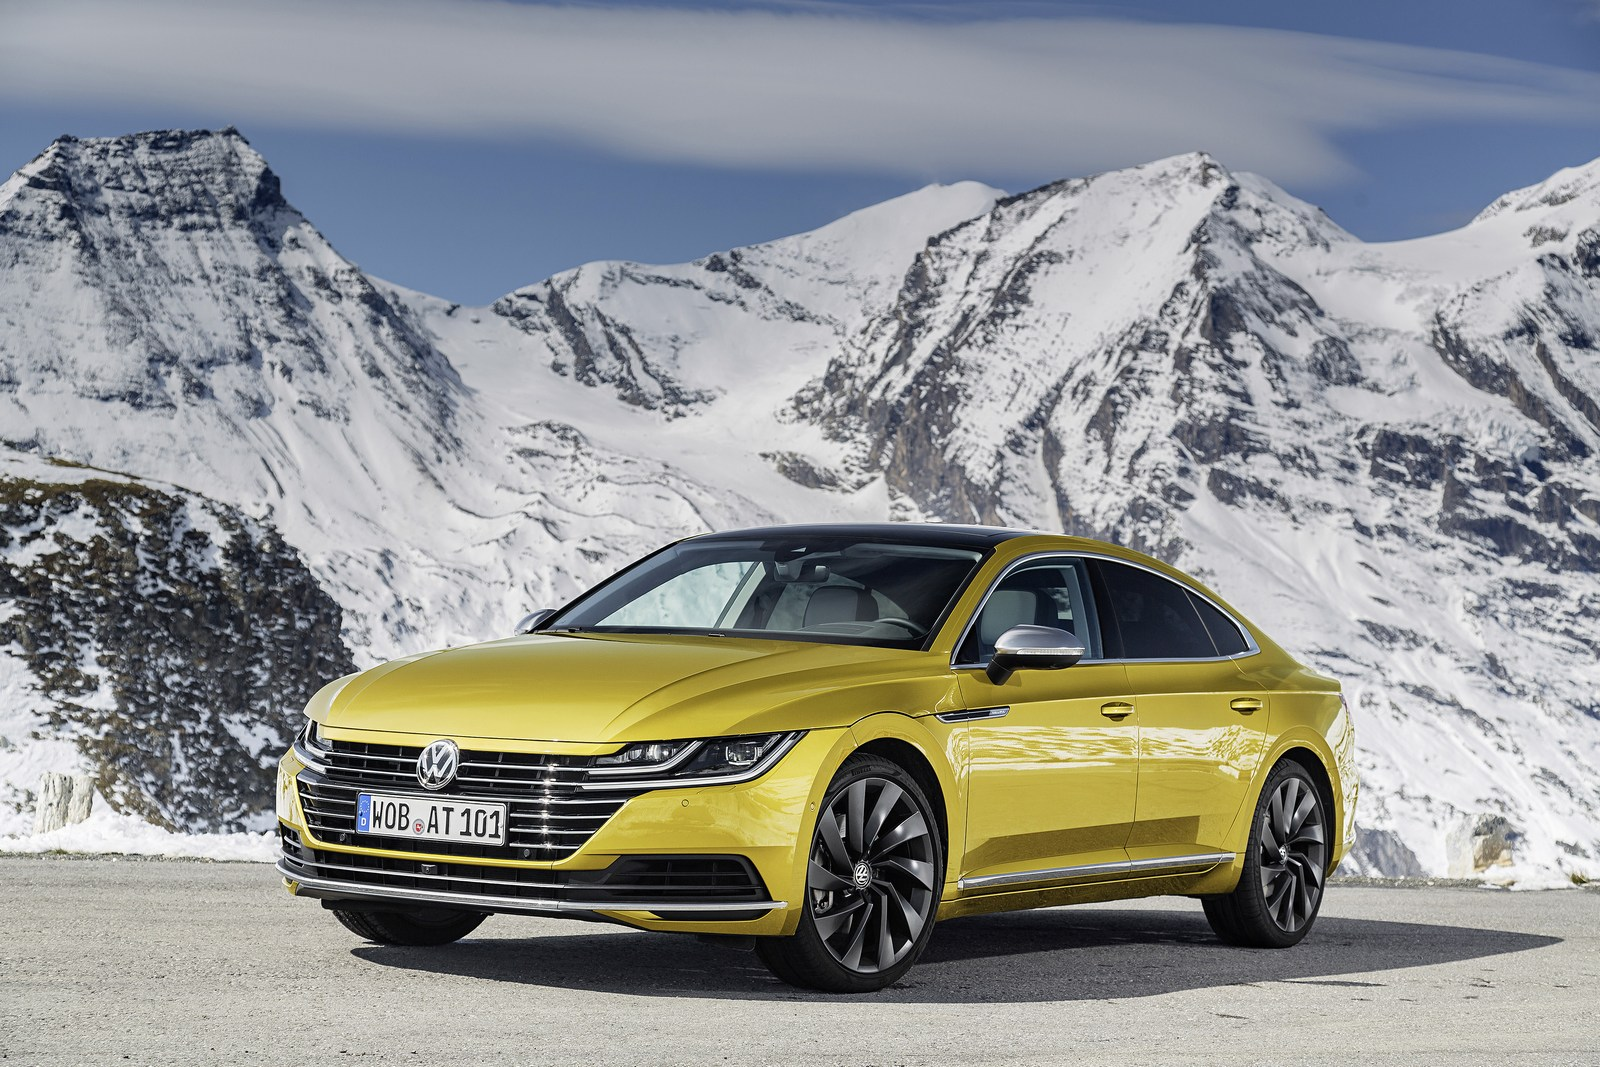 VW Arteon To Celebrate Its U.S. Debut In Chicago | Carscoops